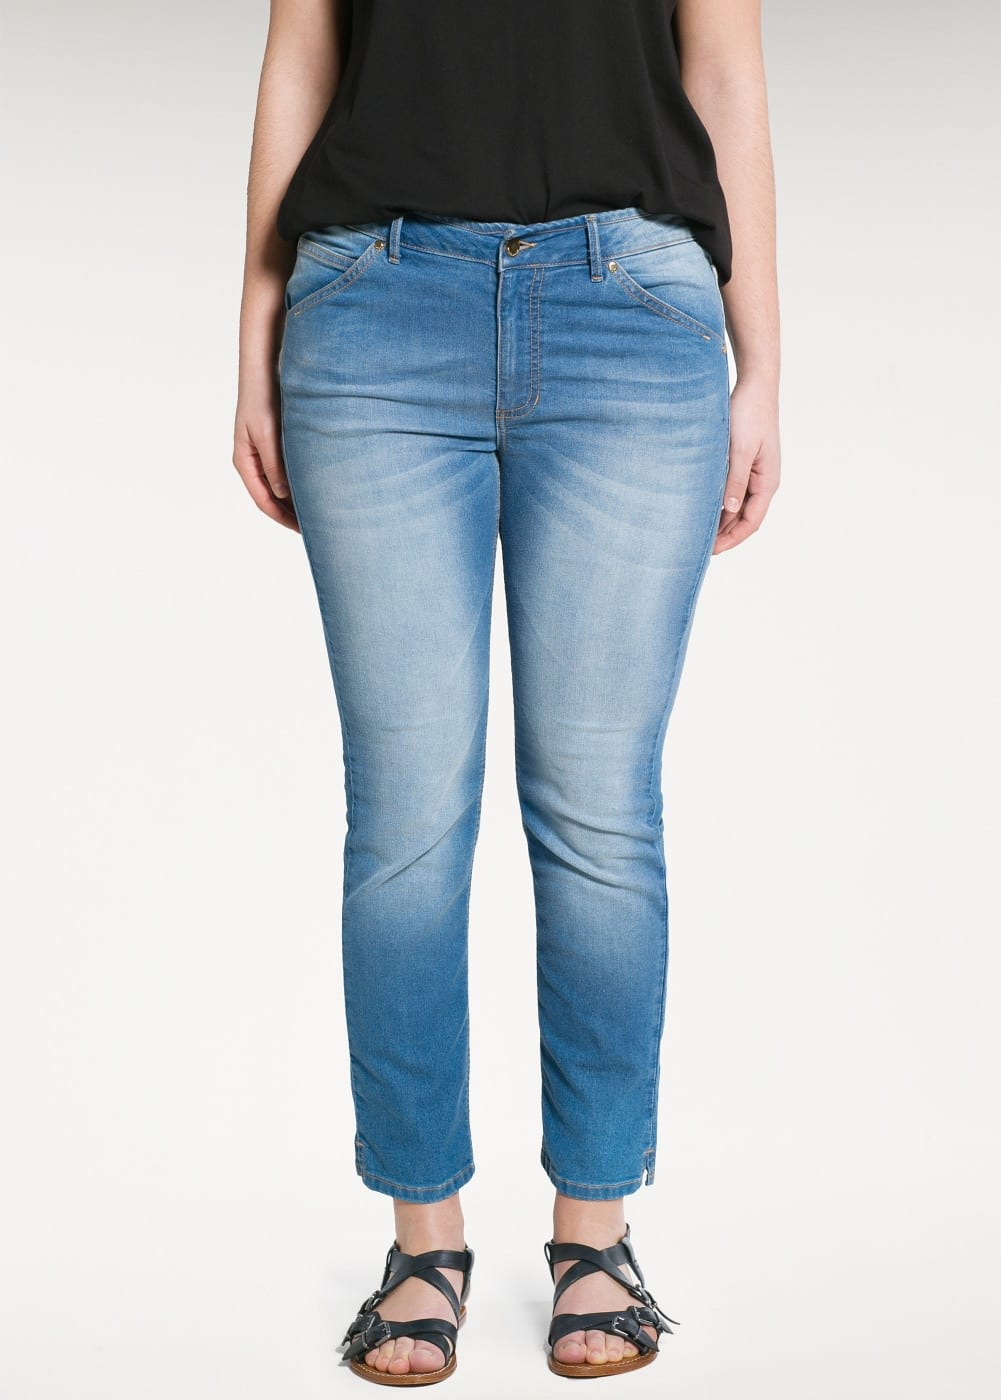 Slim-fit Cali jeans